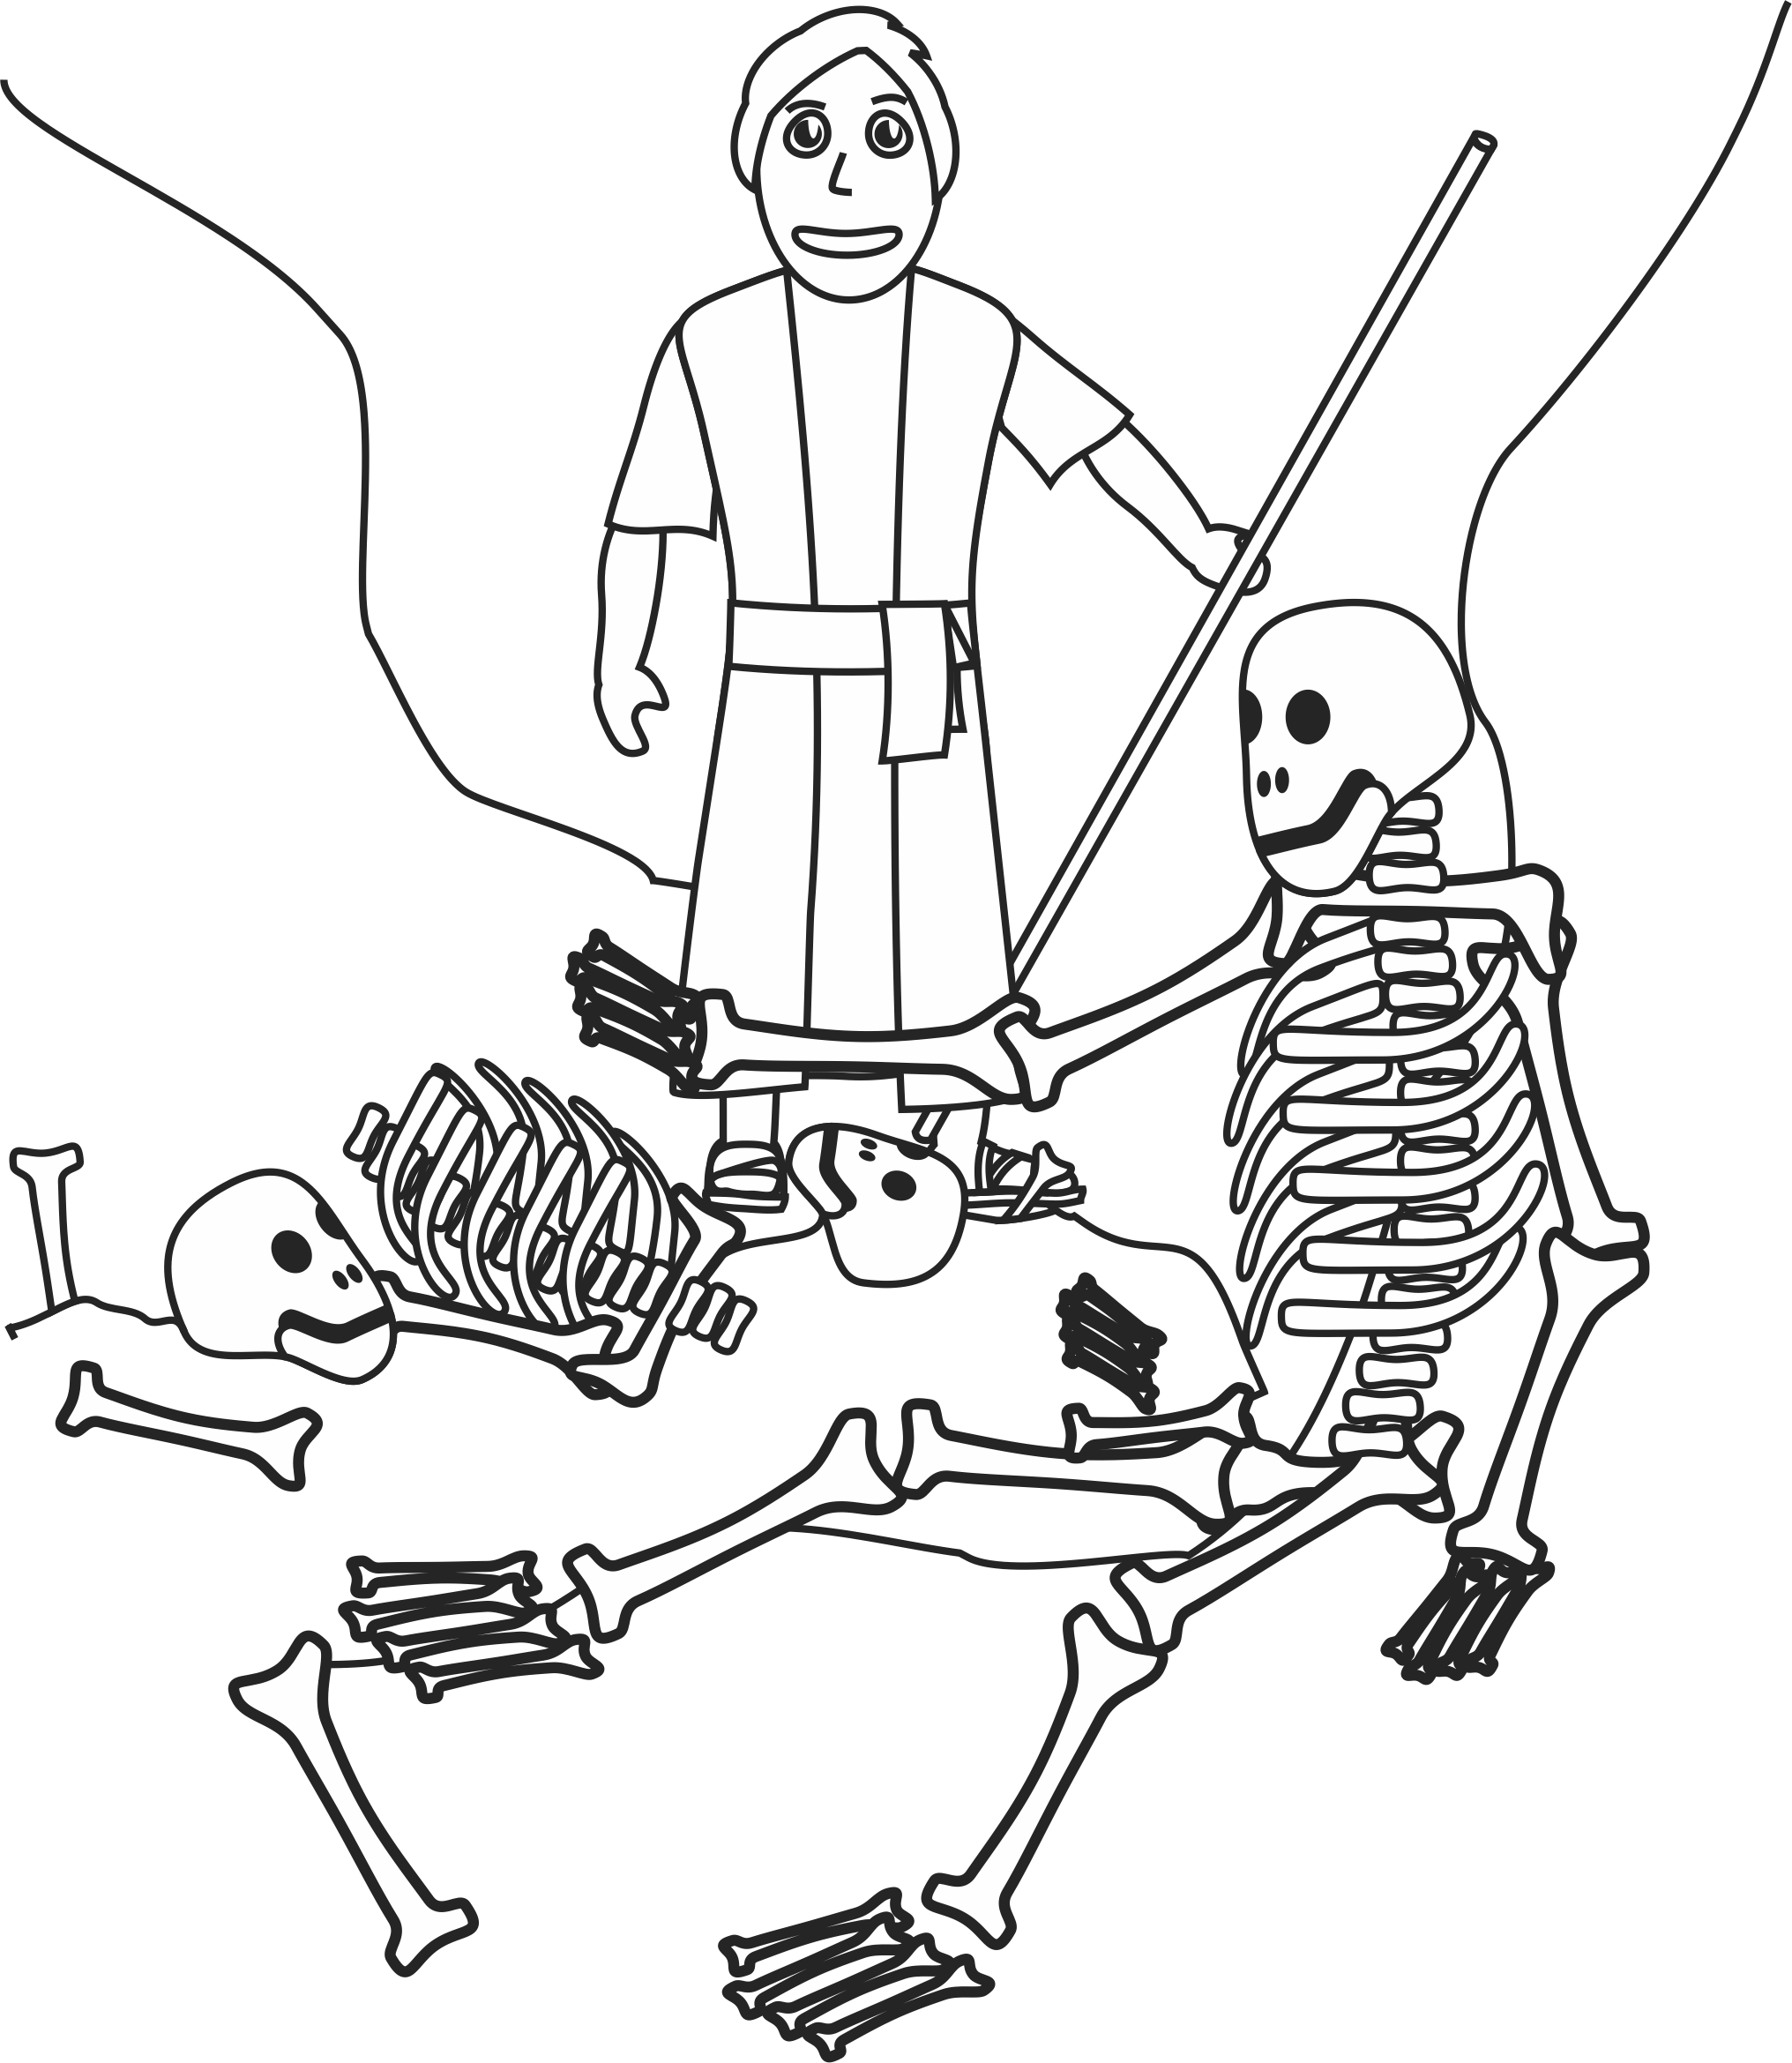 Ezekiel and the valley of dry bones coloring page | Our Bible ...